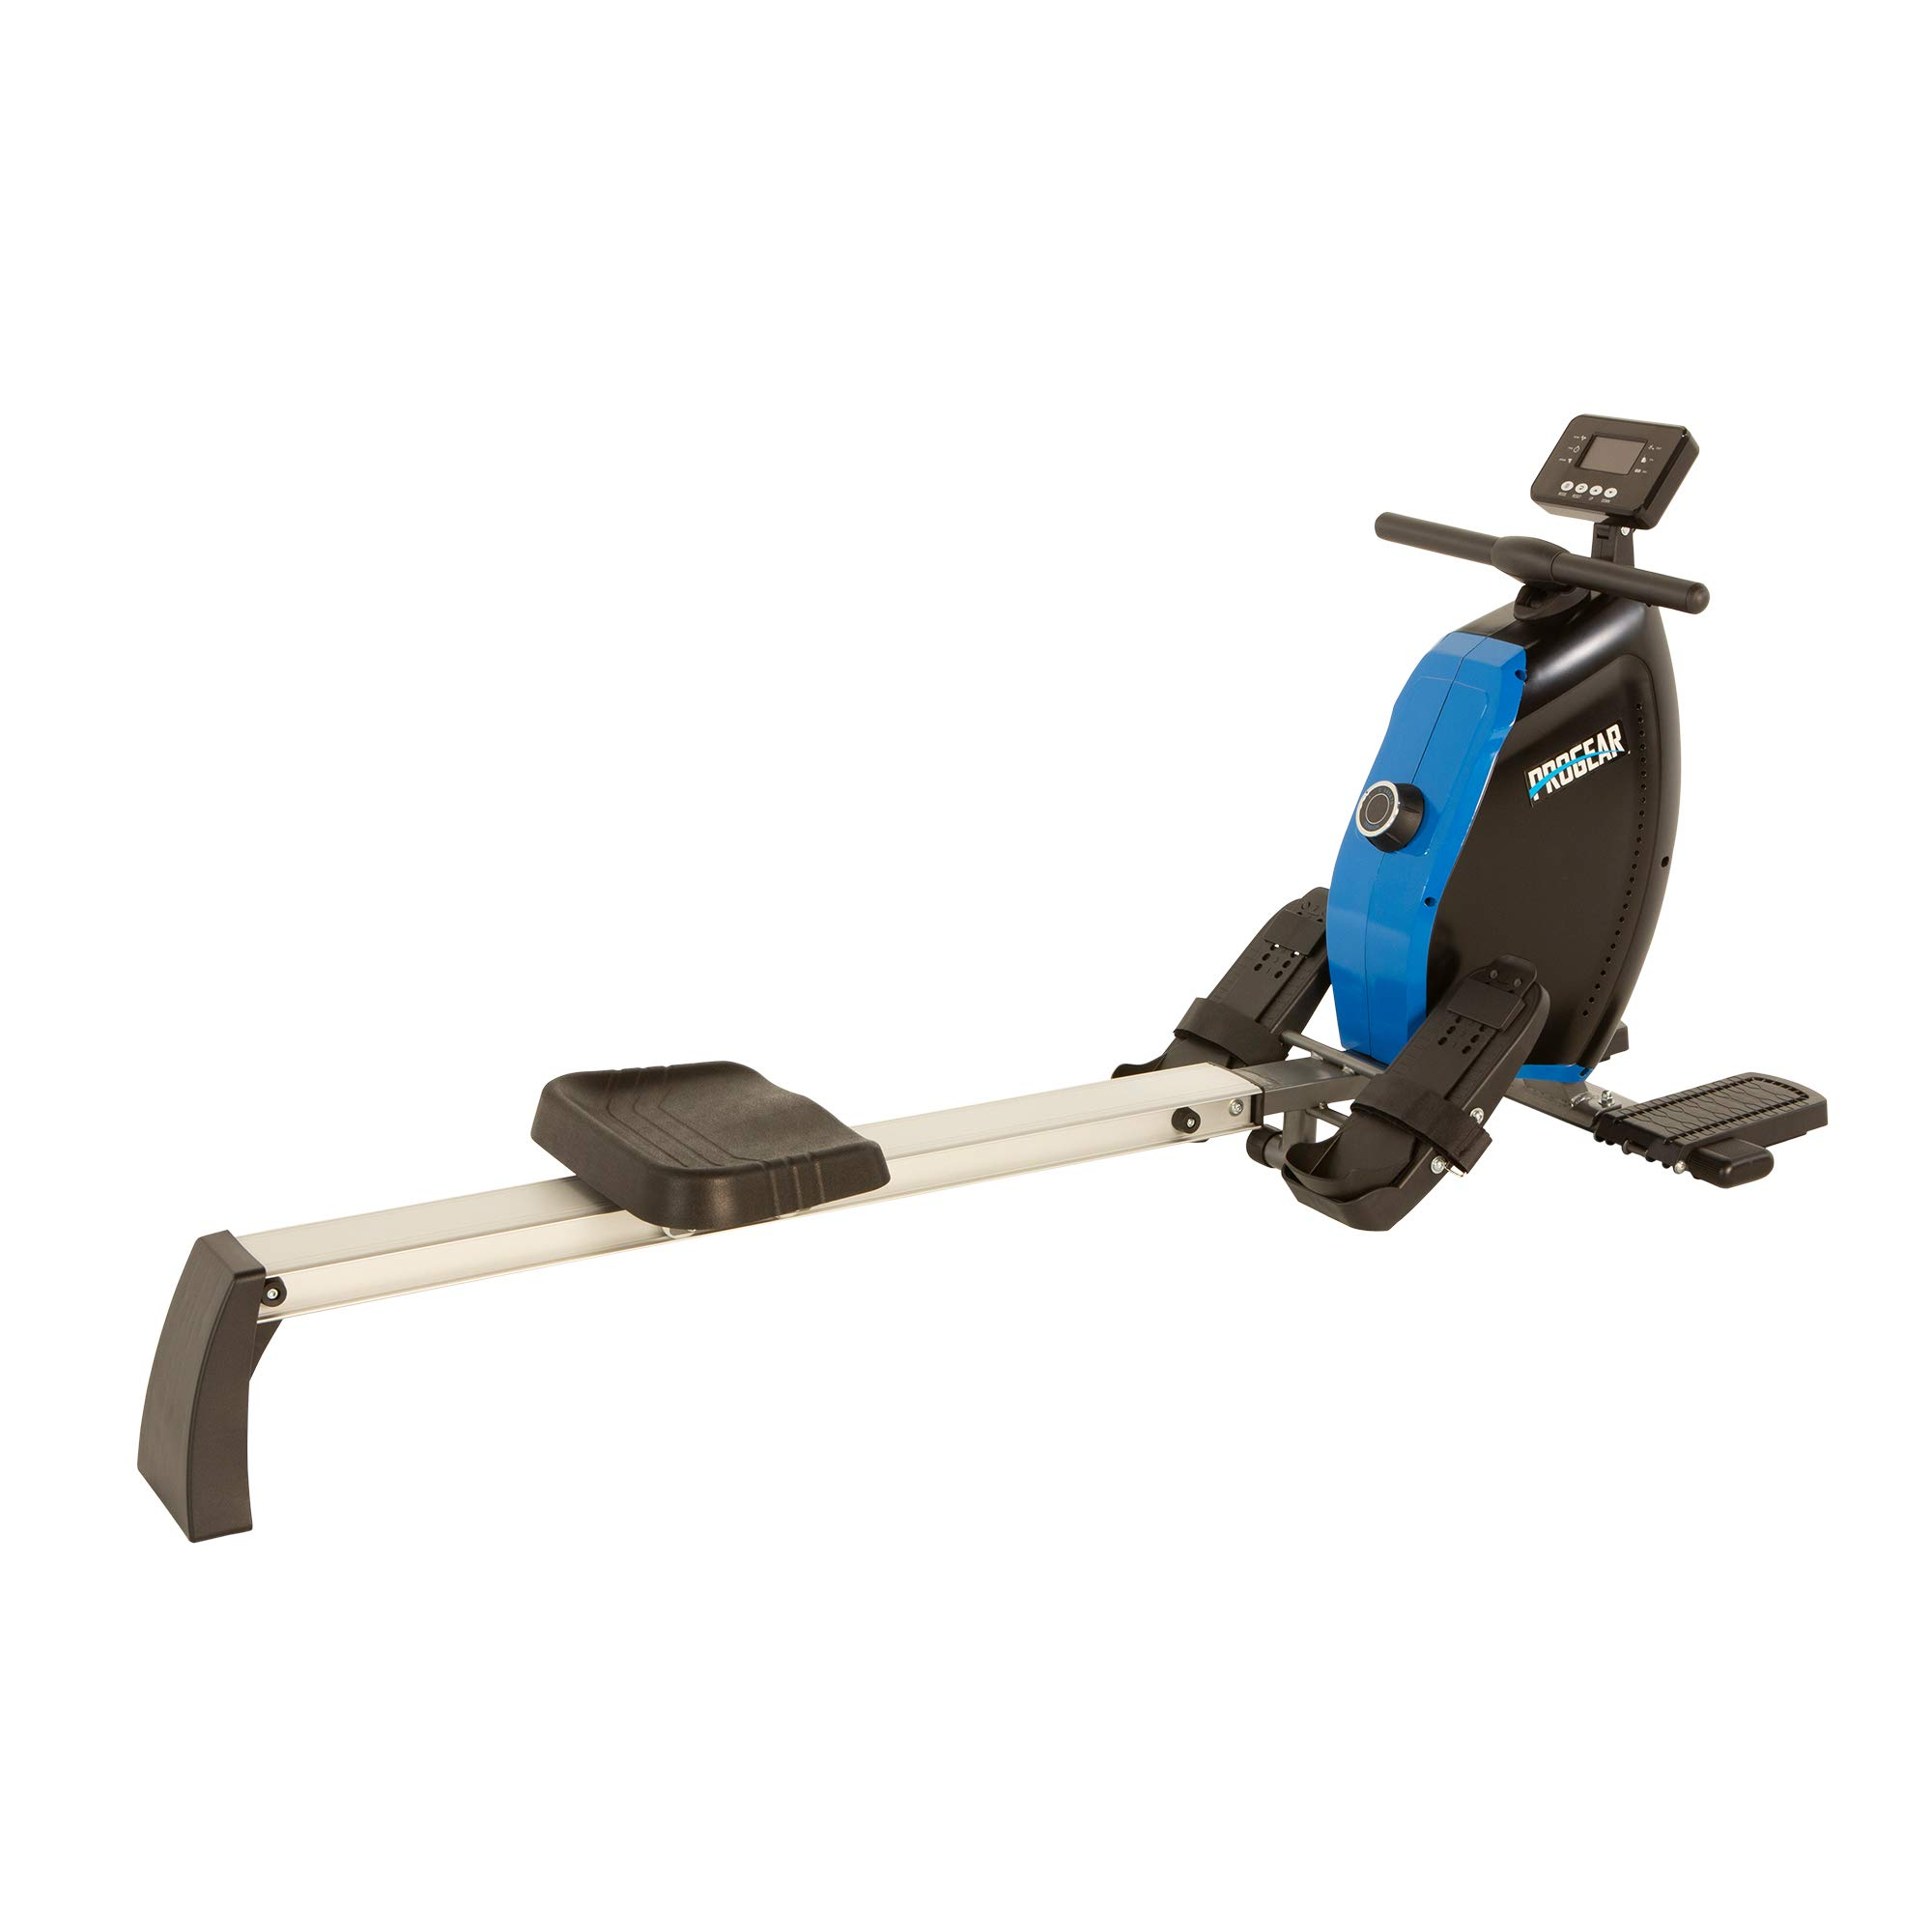 ProGear 1200XL Full Body Workout Rower Rowing Machine with Additional Exercises and Goal Settings